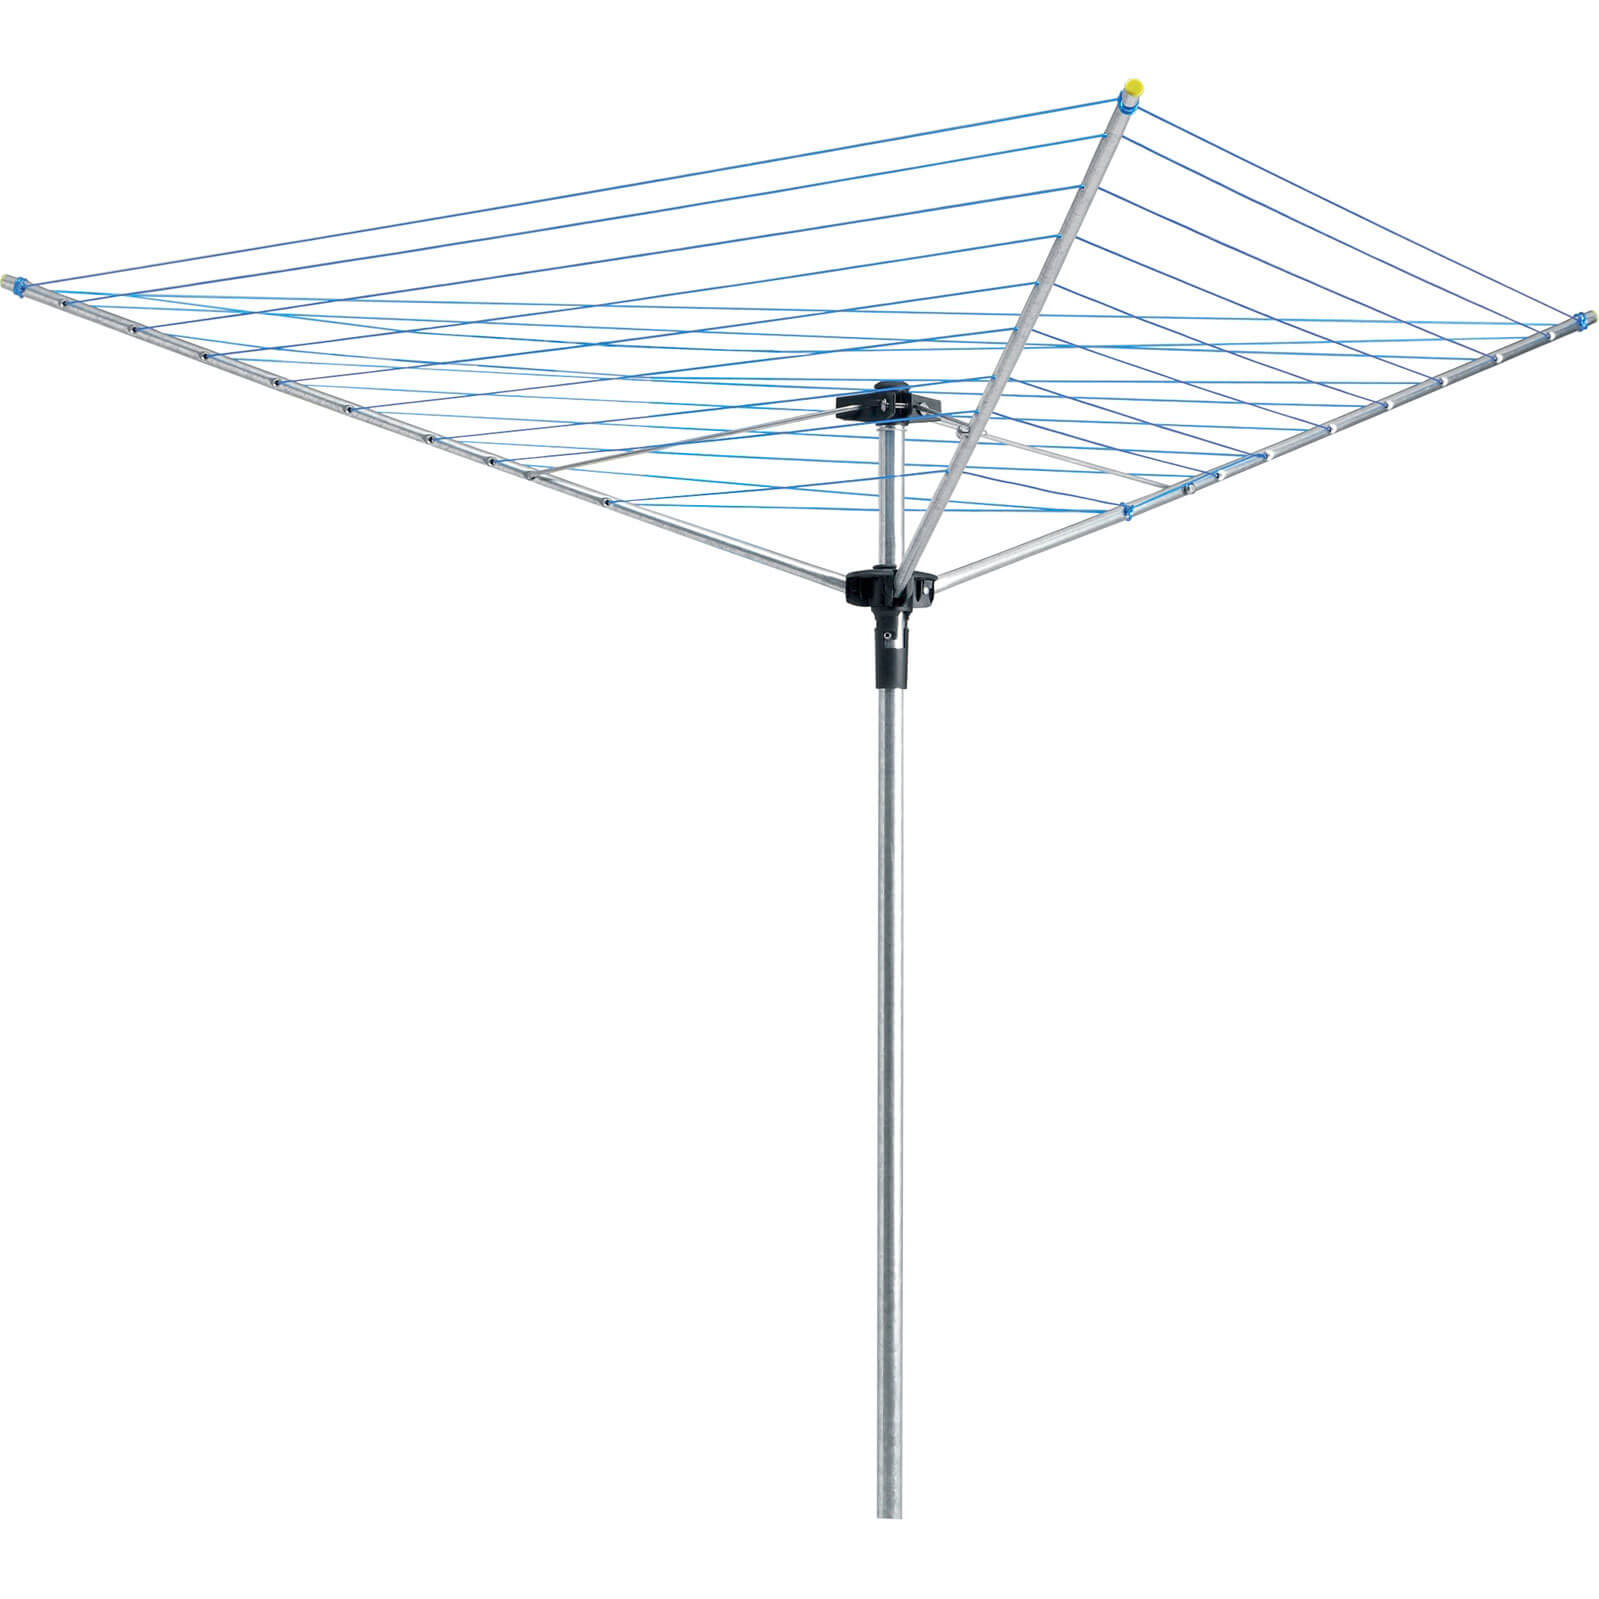 Image of Hills Industries 1407 3 Arm Rotary Washing Line with 35m Line